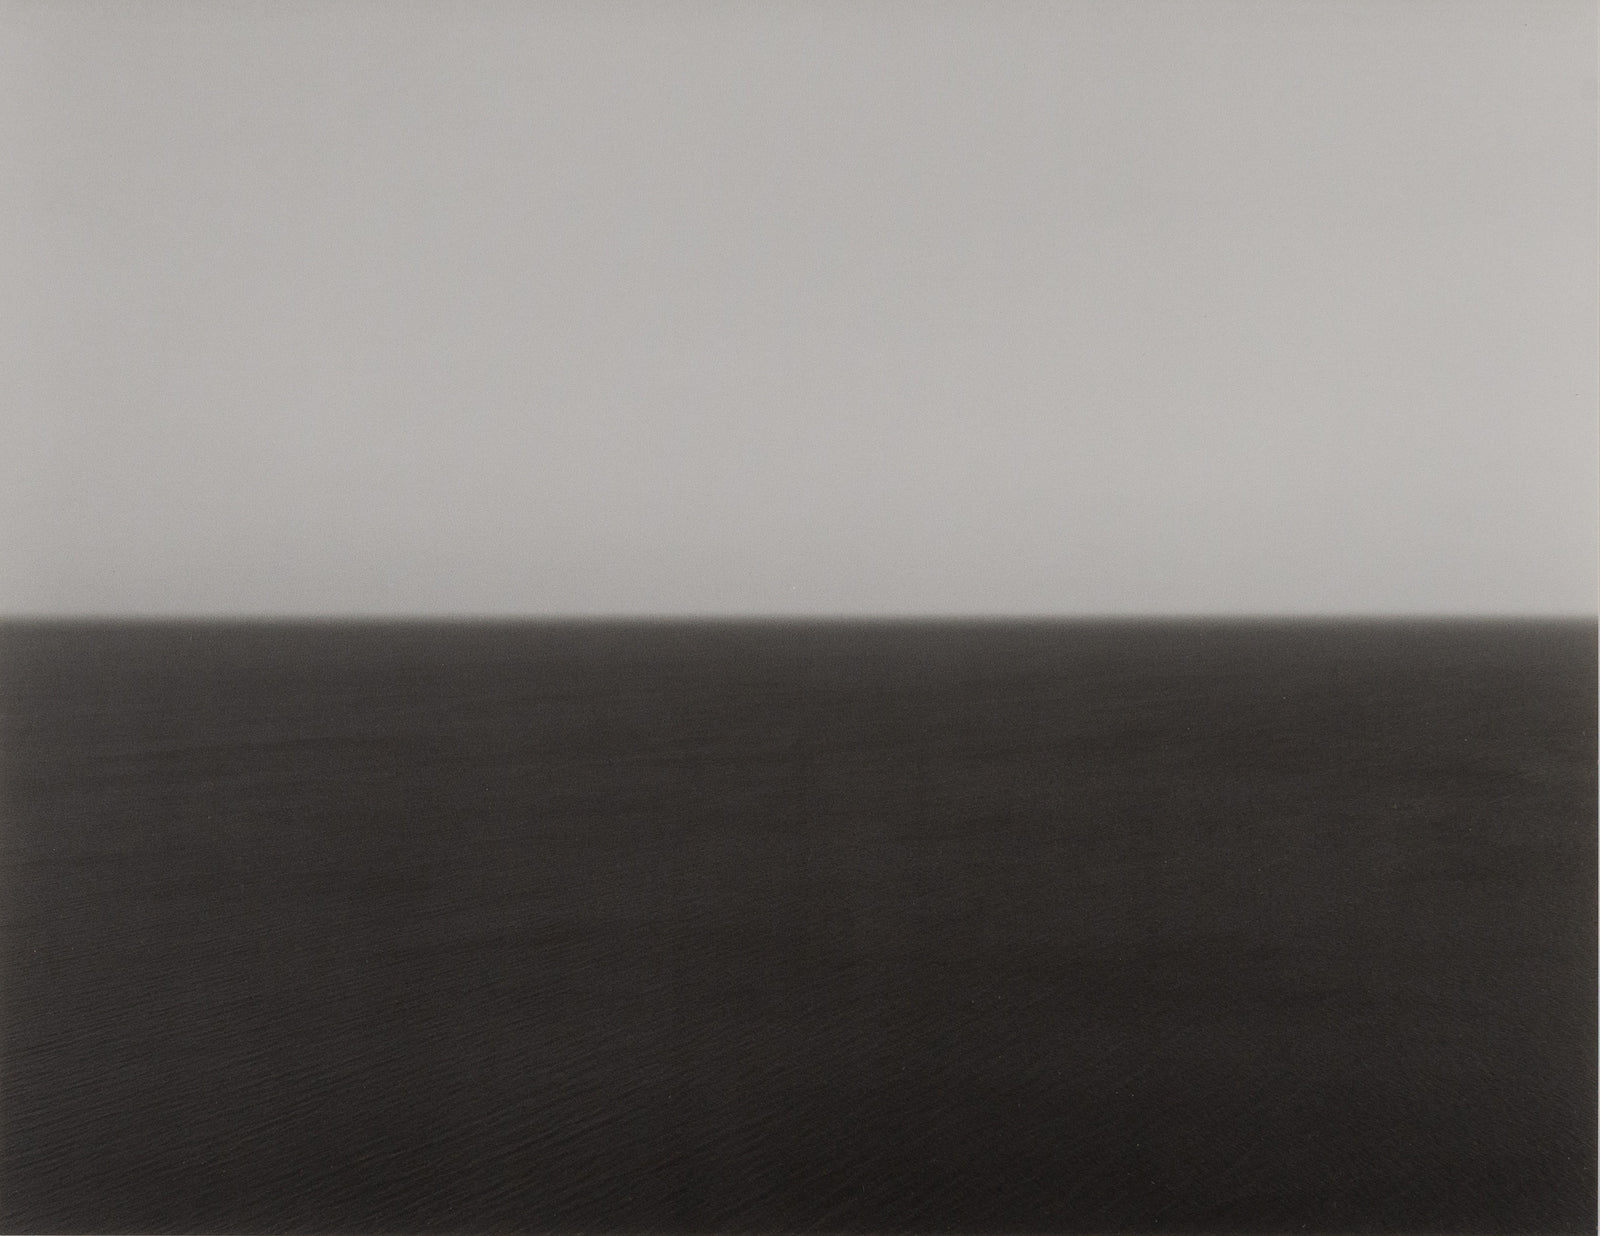 「Time Exposed 」371  MARMARA SEA  SILIVLI  1991